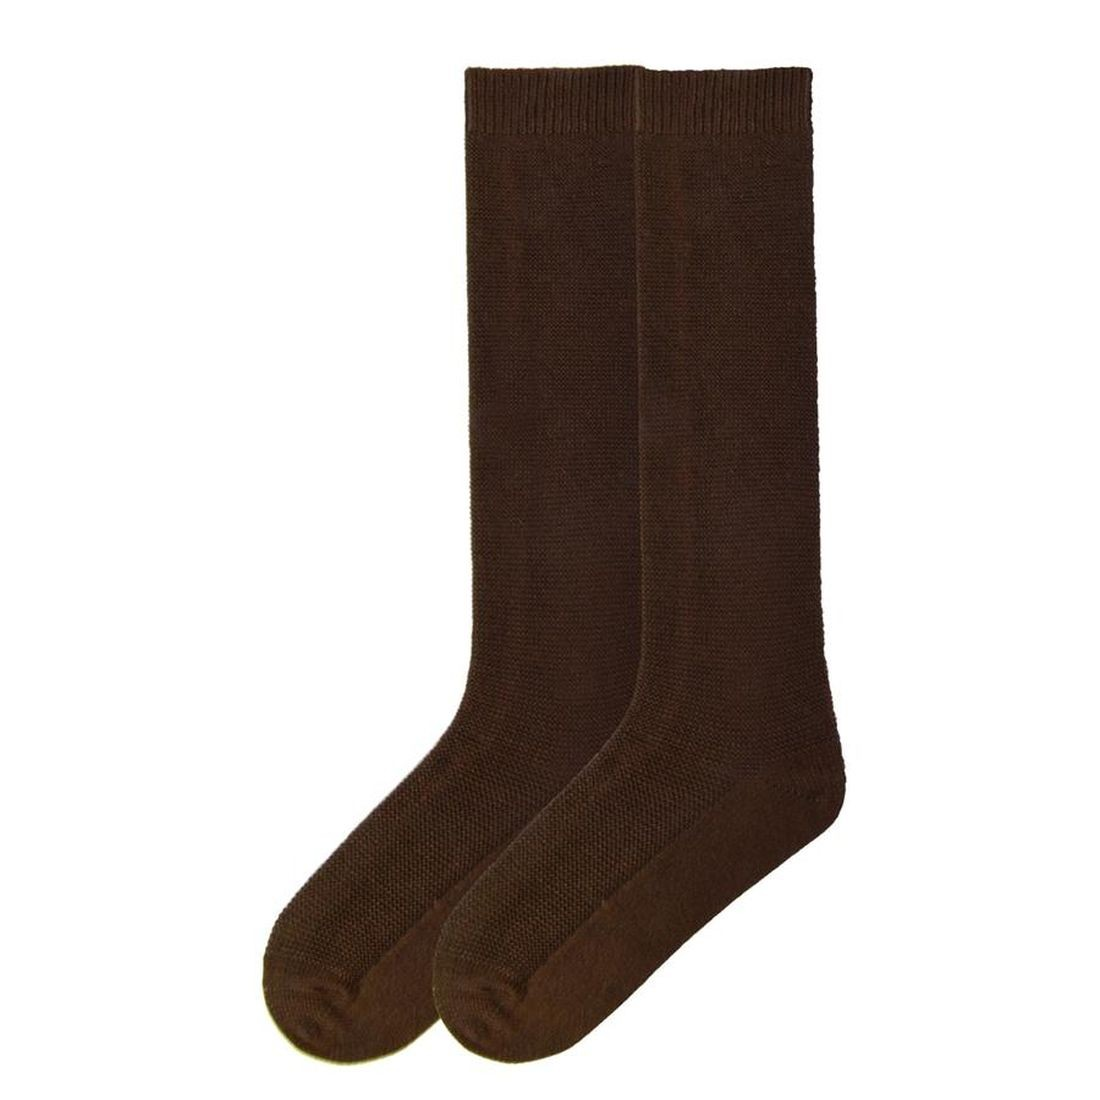 Free shipping BOTH ways on Socks, Brown, from our vast selection of styles. Fast delivery, and 24/7/ real-person service with a smile. Click or call